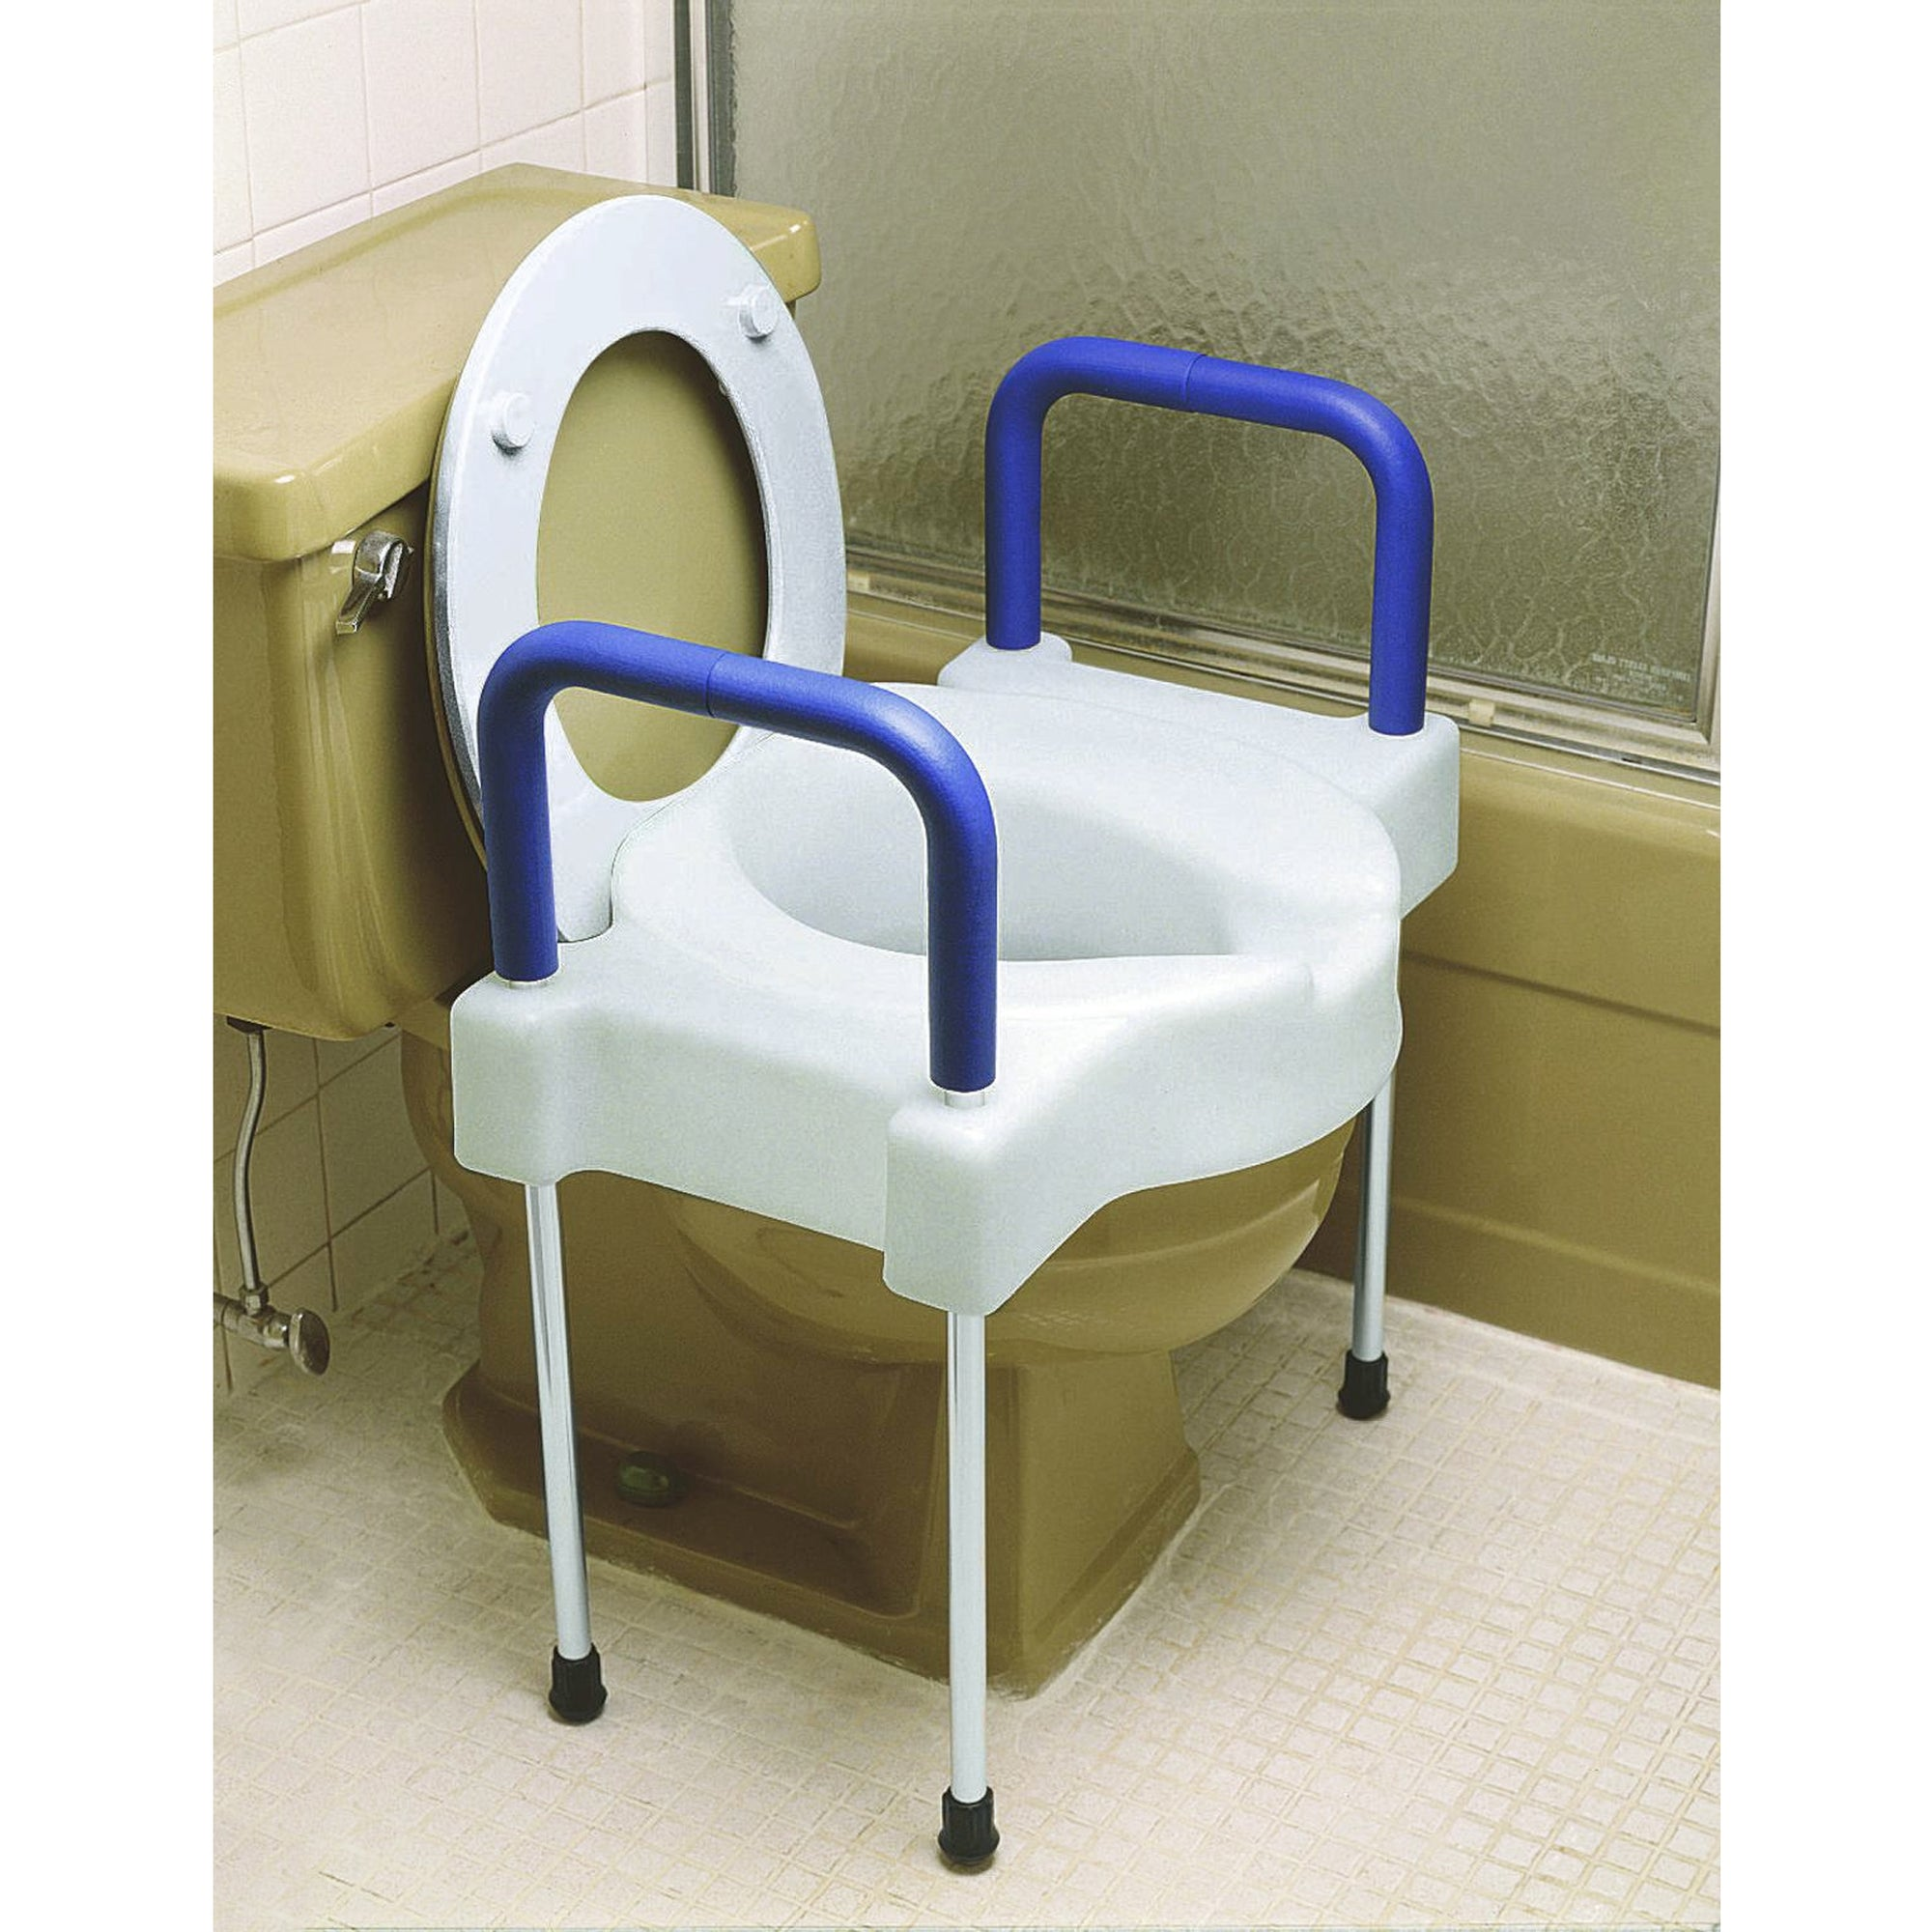 Extra Wide Tall Ette Elevated Toilet Seat (with or without Legs